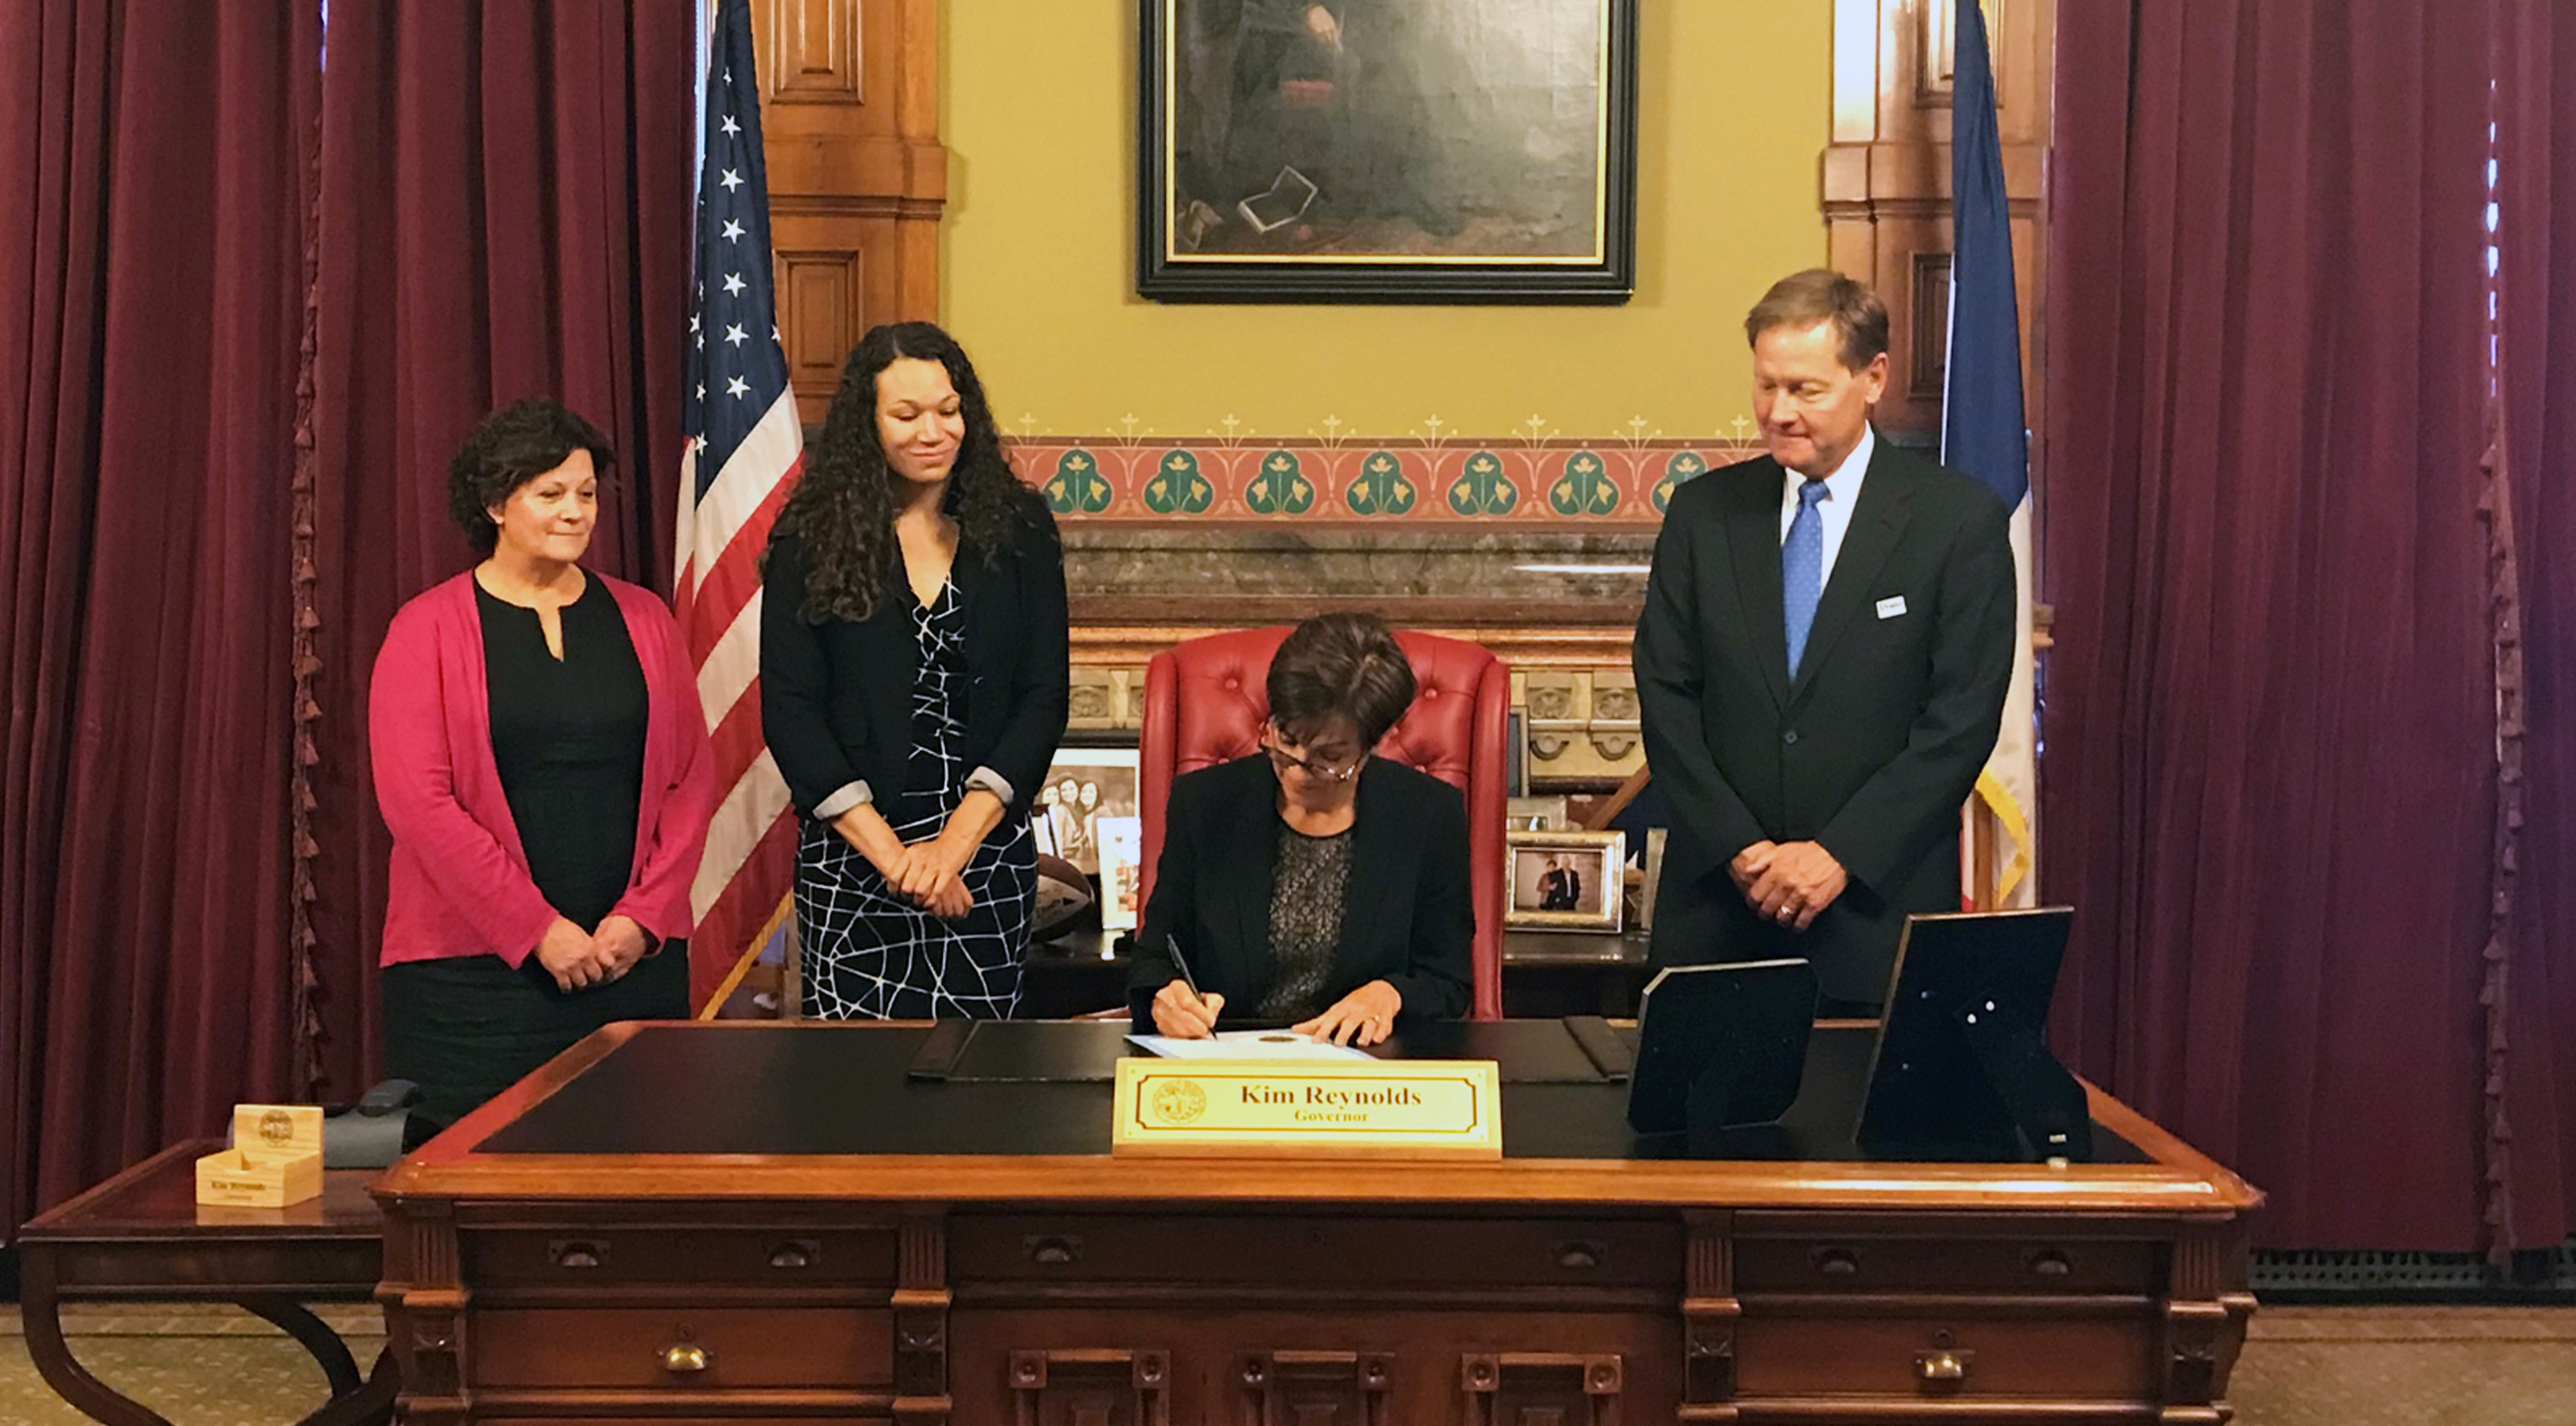 Iowa Gov. Kim Reynolds with Drake Law School personnel after signing a proclamation commemorating the Clark decision.